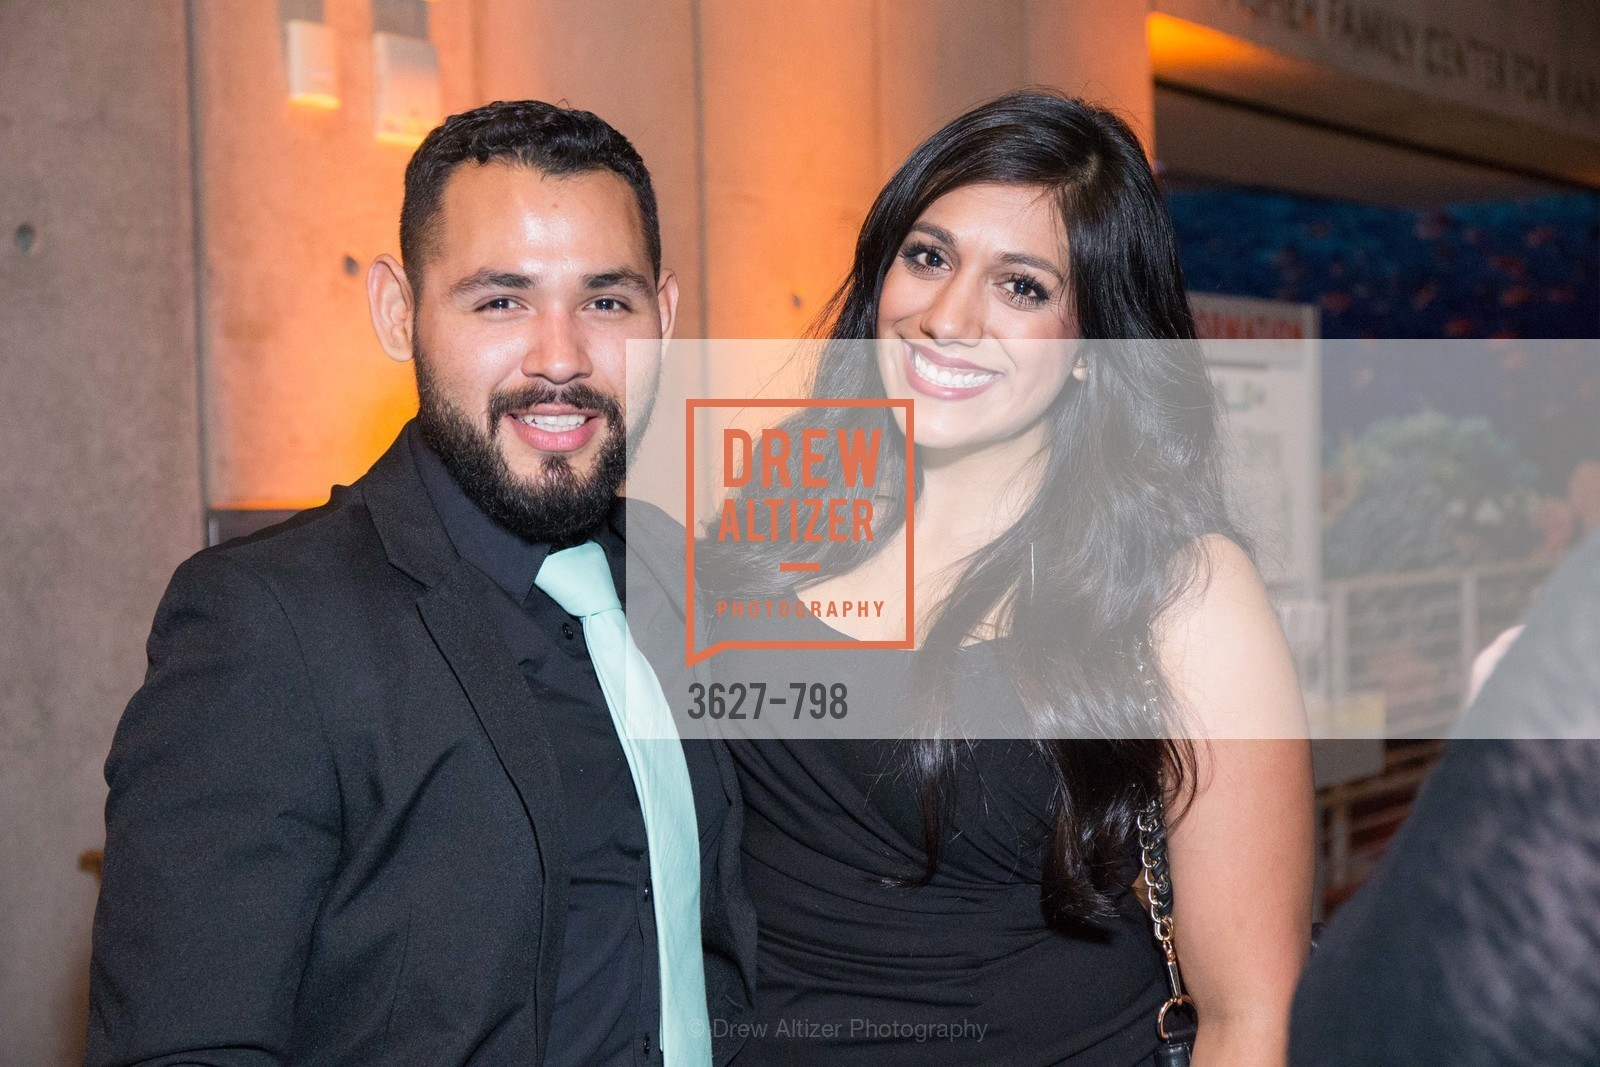 Top Picks, CALIFORNIA ACADEMY OF SCIENCES - Big Bang Gala 2015, April 24th, 2015, Photo,Drew Altizer, Drew Altizer Photography, full-service event agency, private events, San Francisco photographer, photographer California